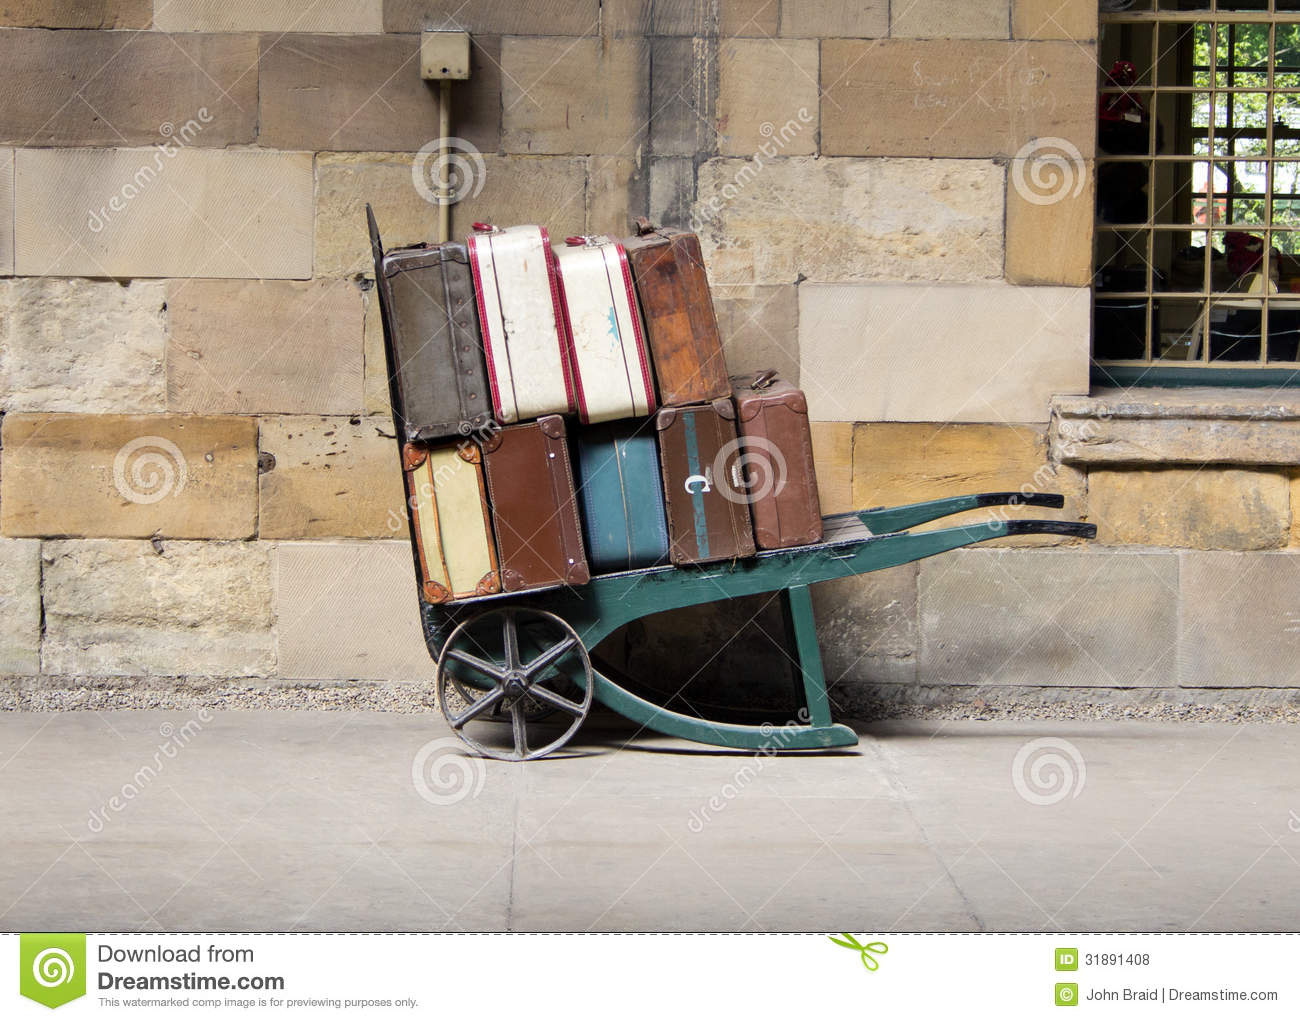 Vintage Luggage Trolley Royalty Free Stock Photos - Image: 31891408